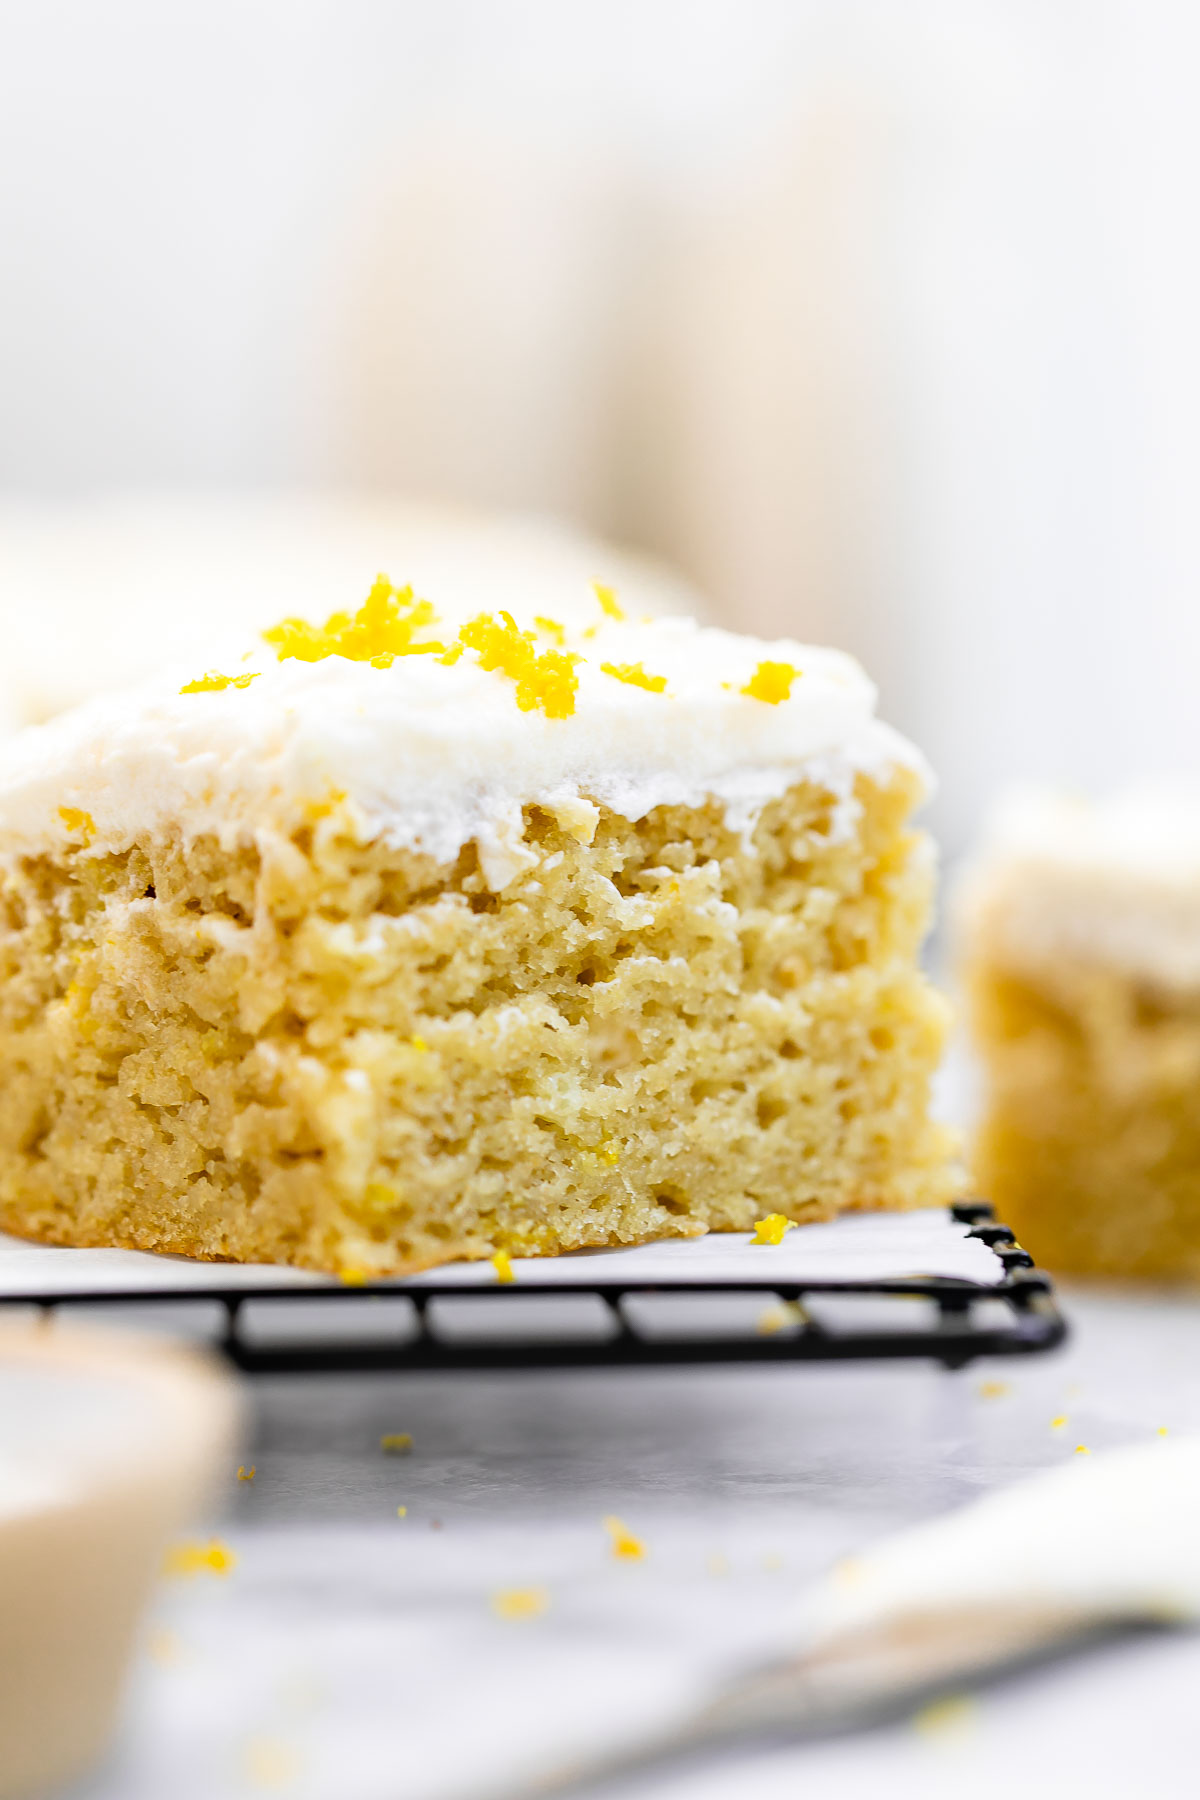 One slice of the lemon cake on a cooling rack.